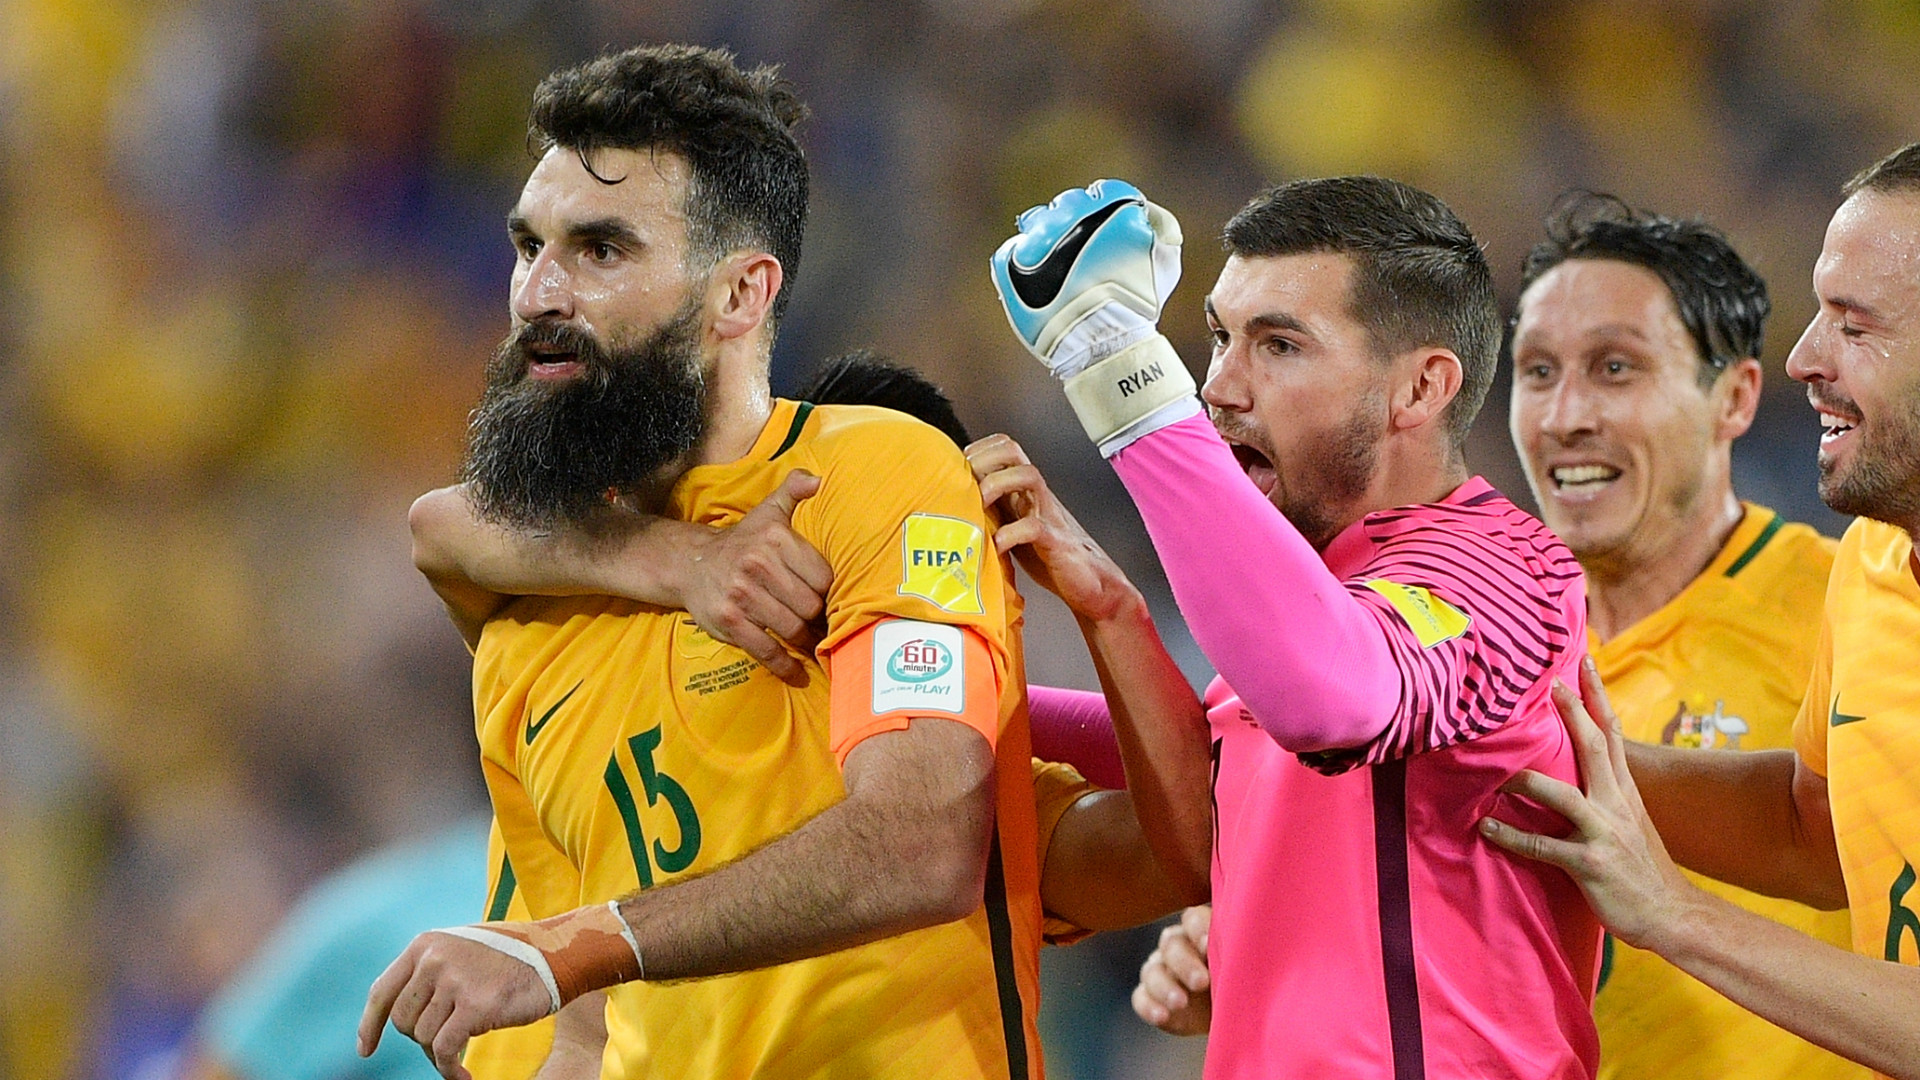 Jedinak scores hat-trick to send Australia to World Cup